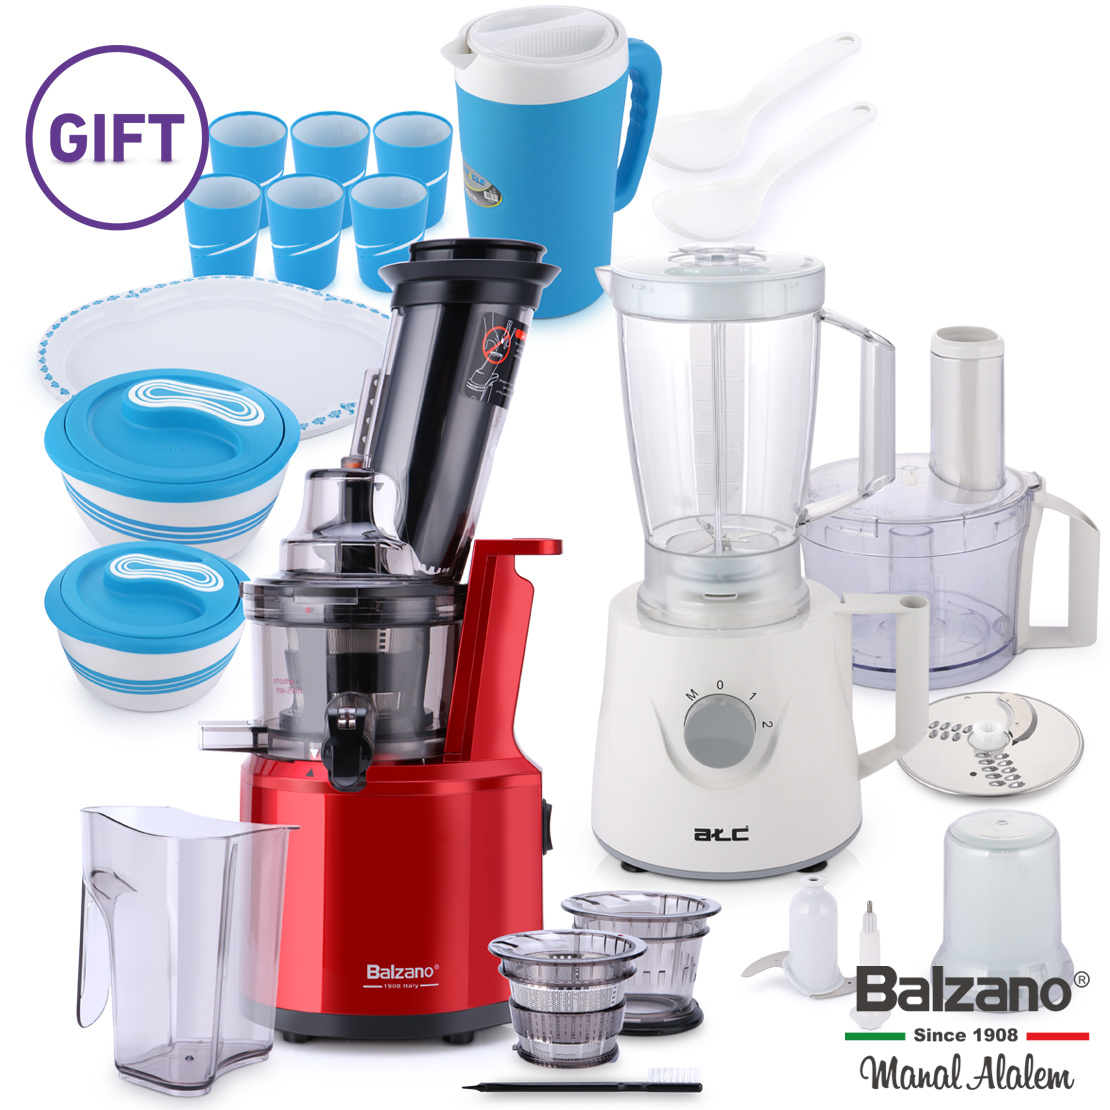 Wide Mouth Slow Juicer with Food Processor & Gift